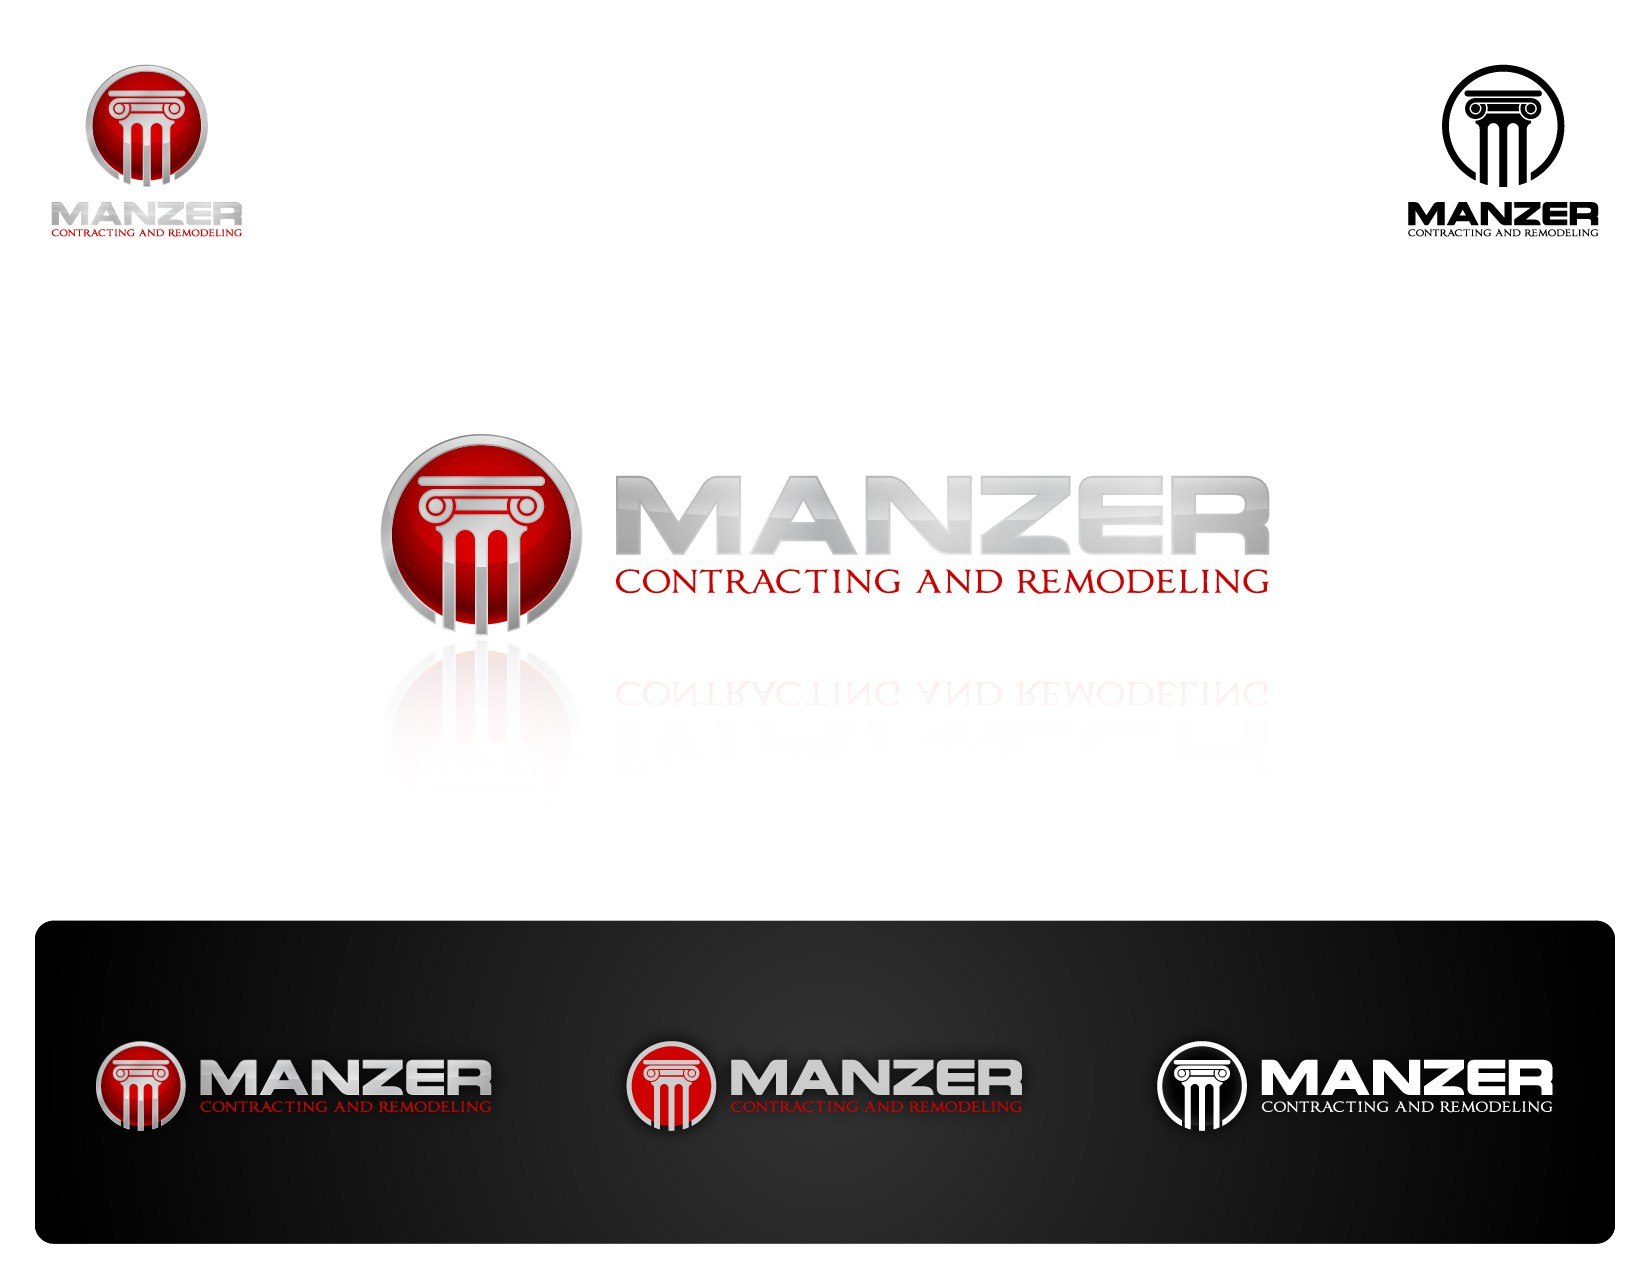 New logo wanted for Manzer Contracting & Remodeling